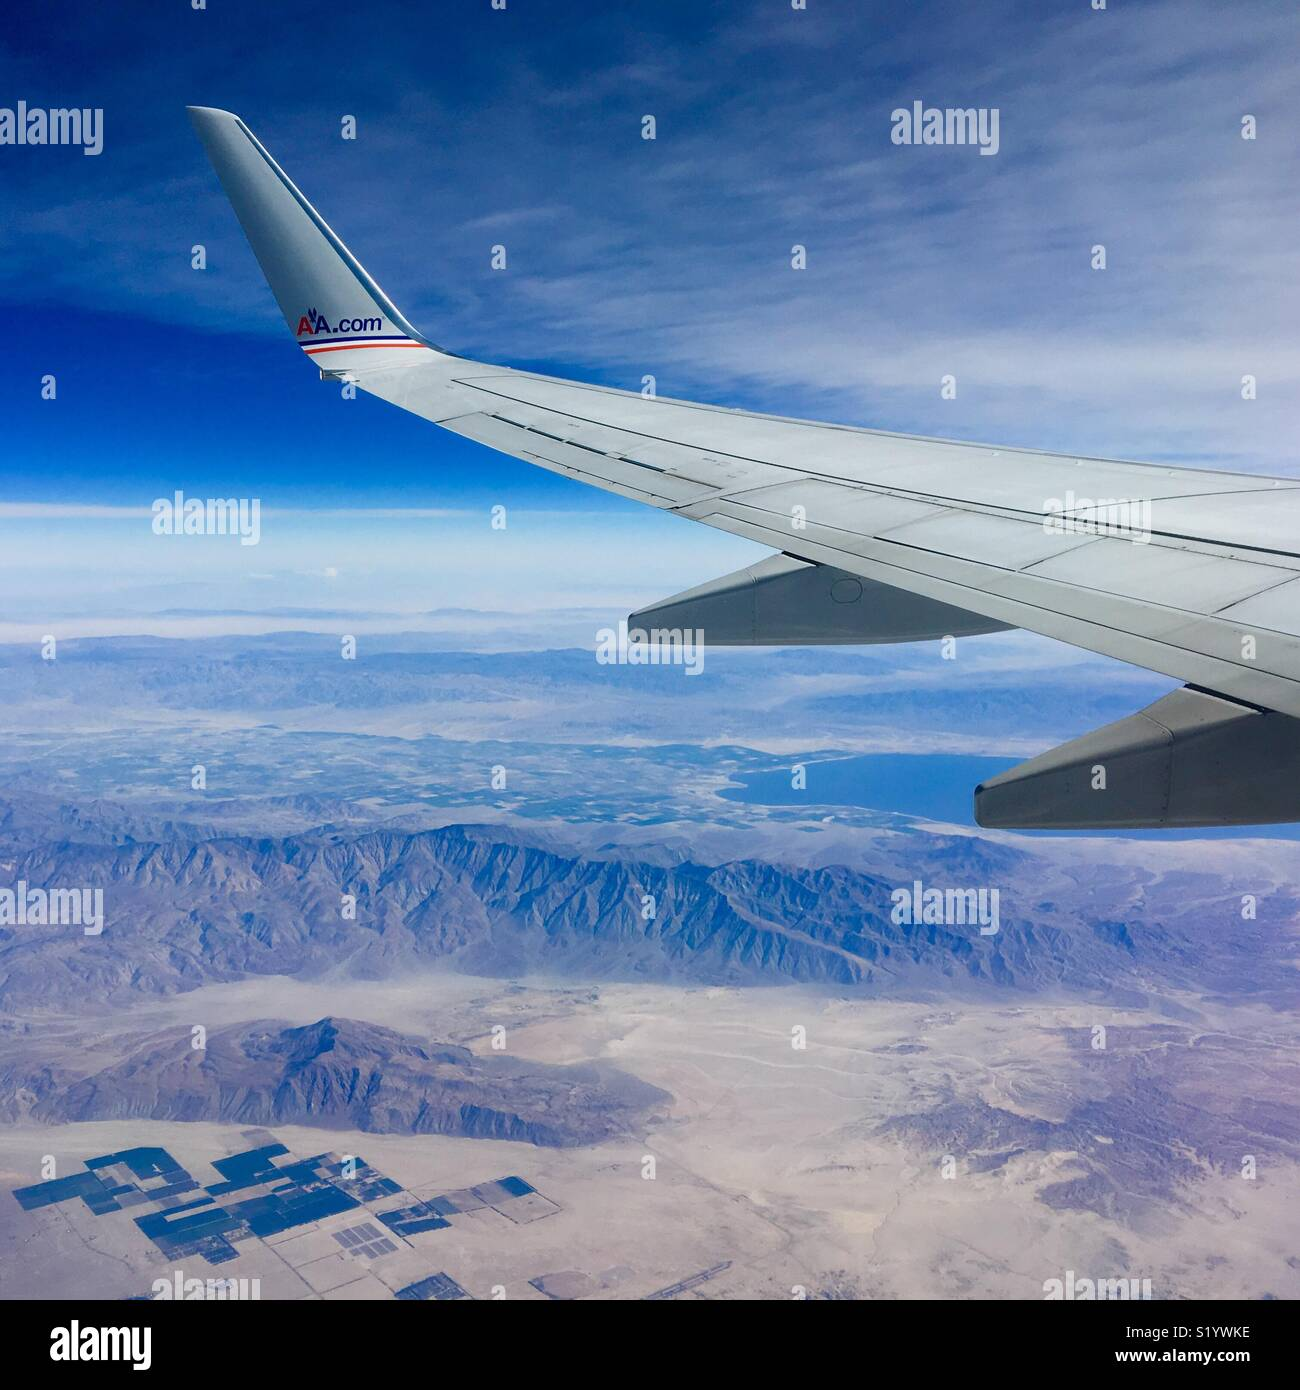 Flying over desert from Los Angeles to Mexico City on an American Airlines flight - Stock Image